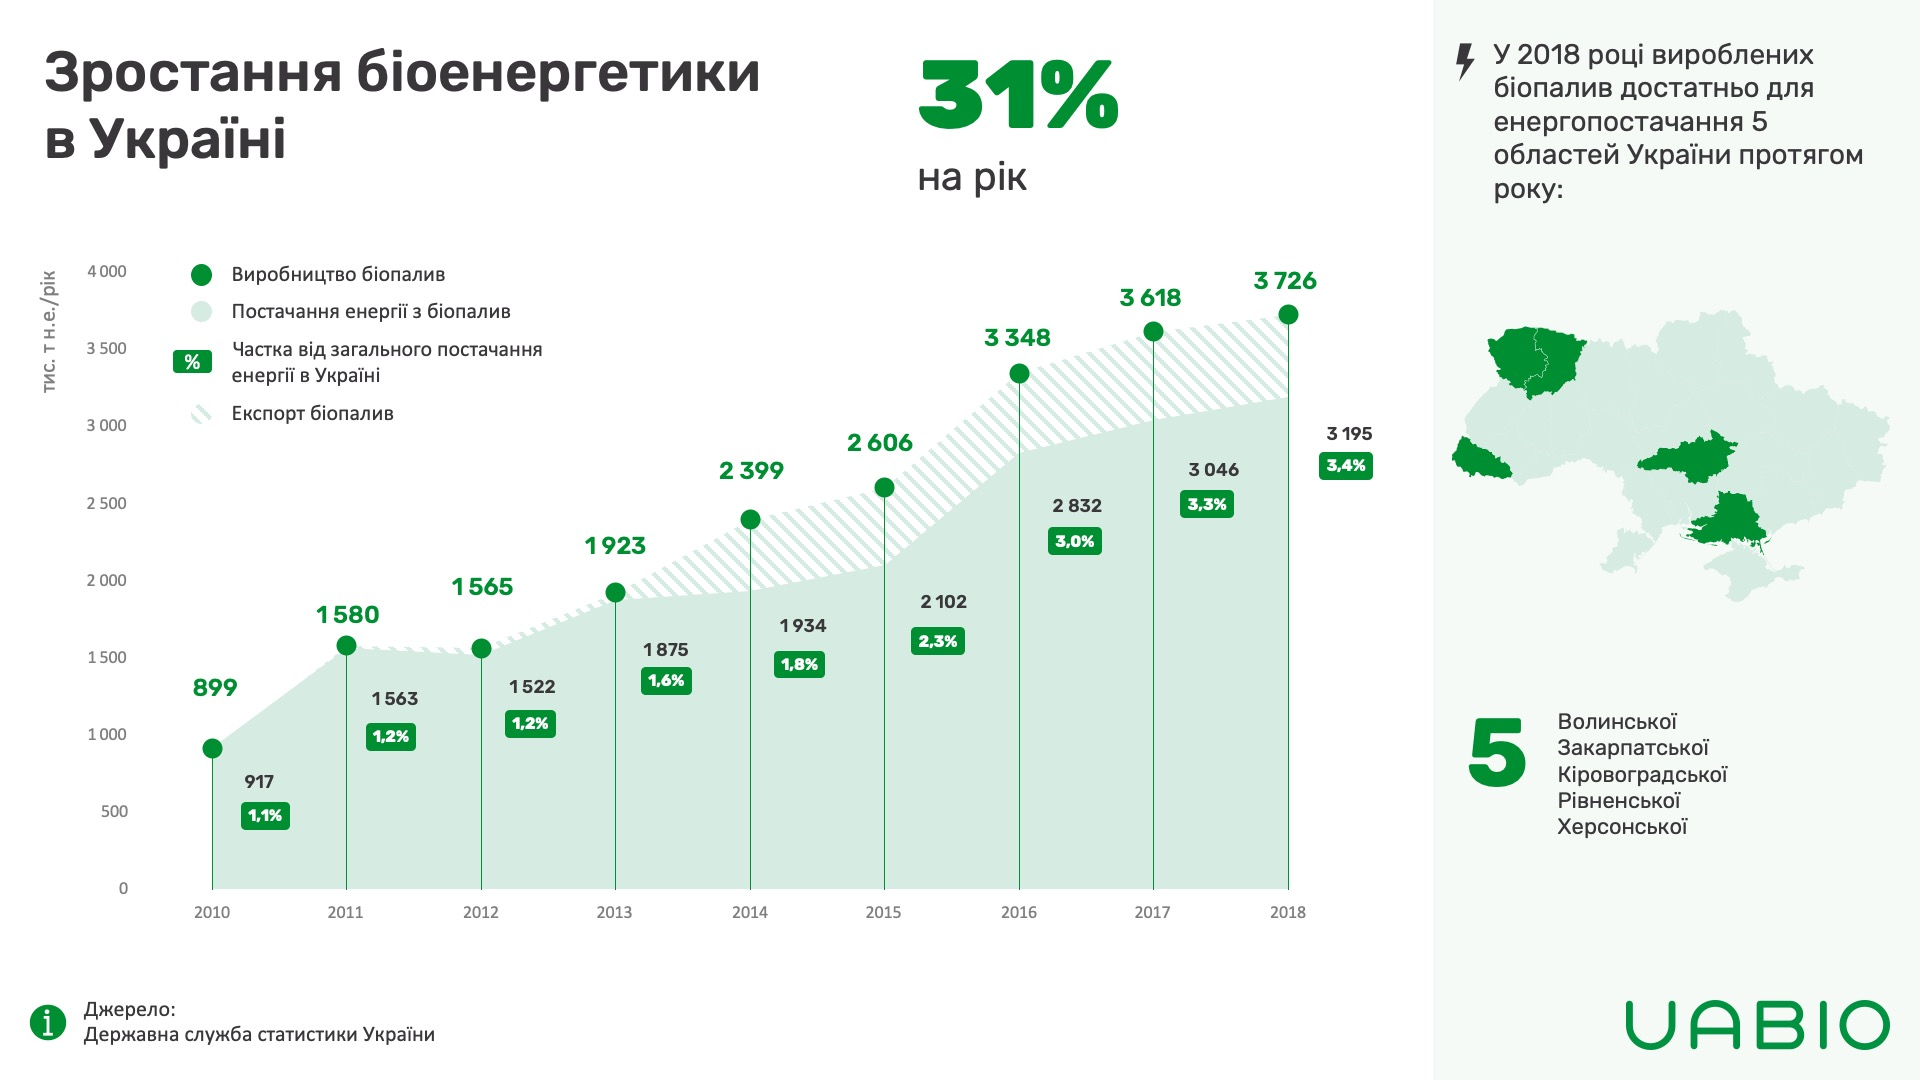 bioenergy-continues-to-grow-2018-ua.jpg